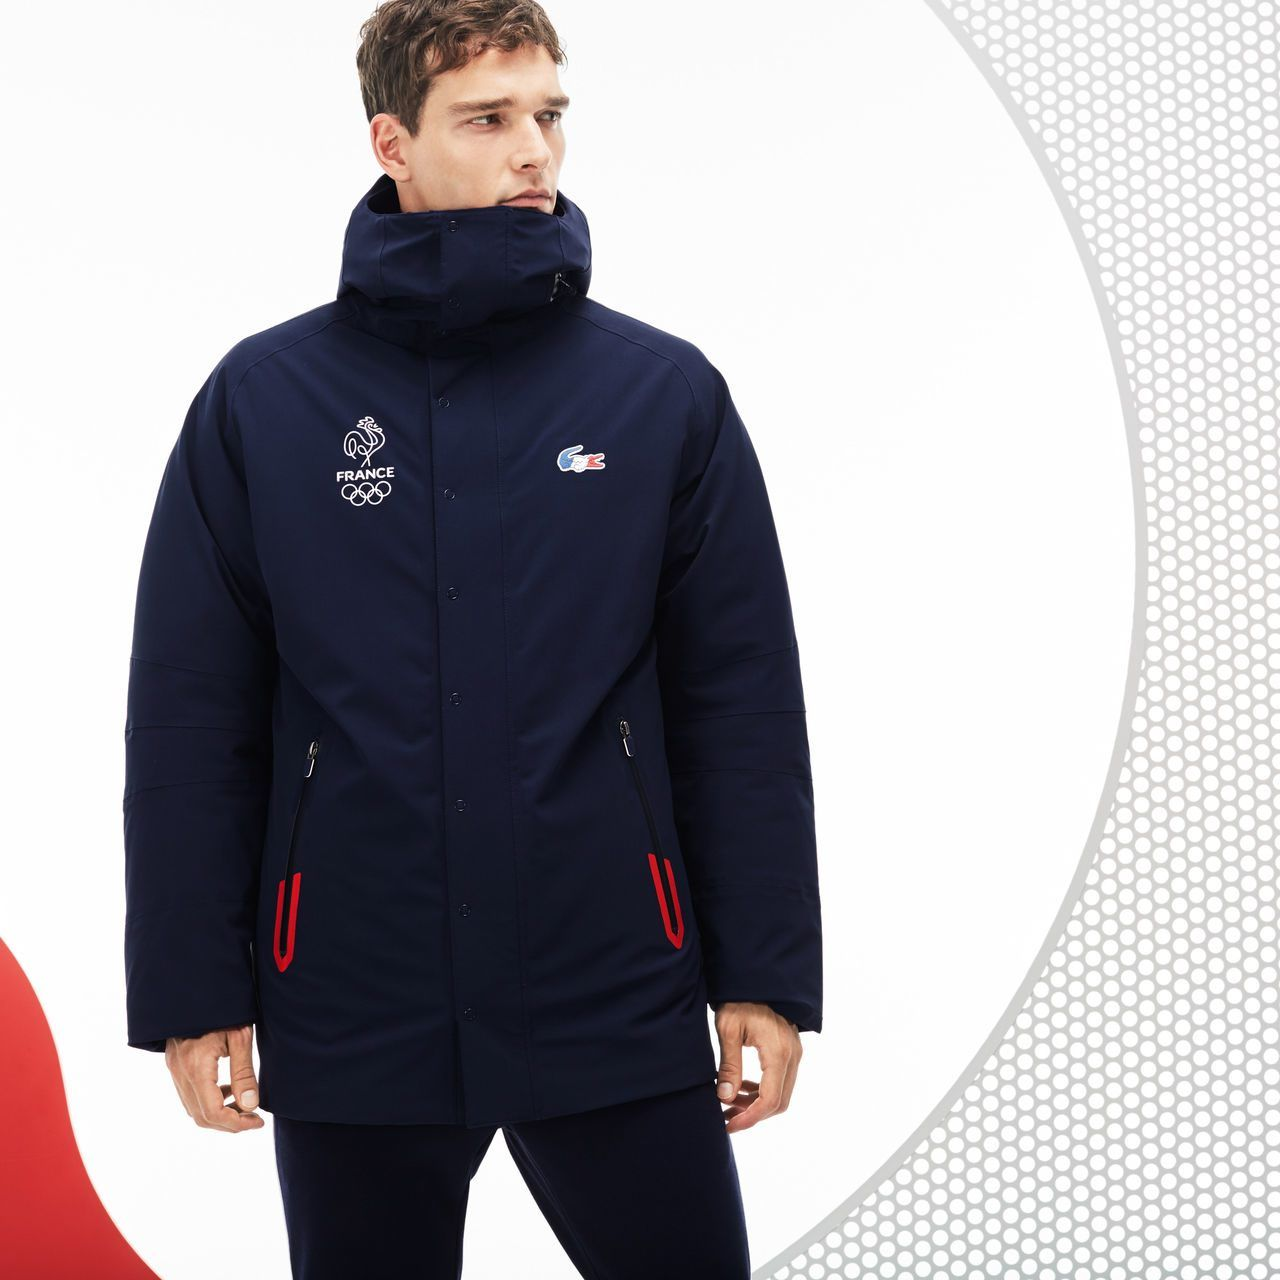 Enduite Parka Lacoste Collection France Sport Technique Olympique 7gfb6y